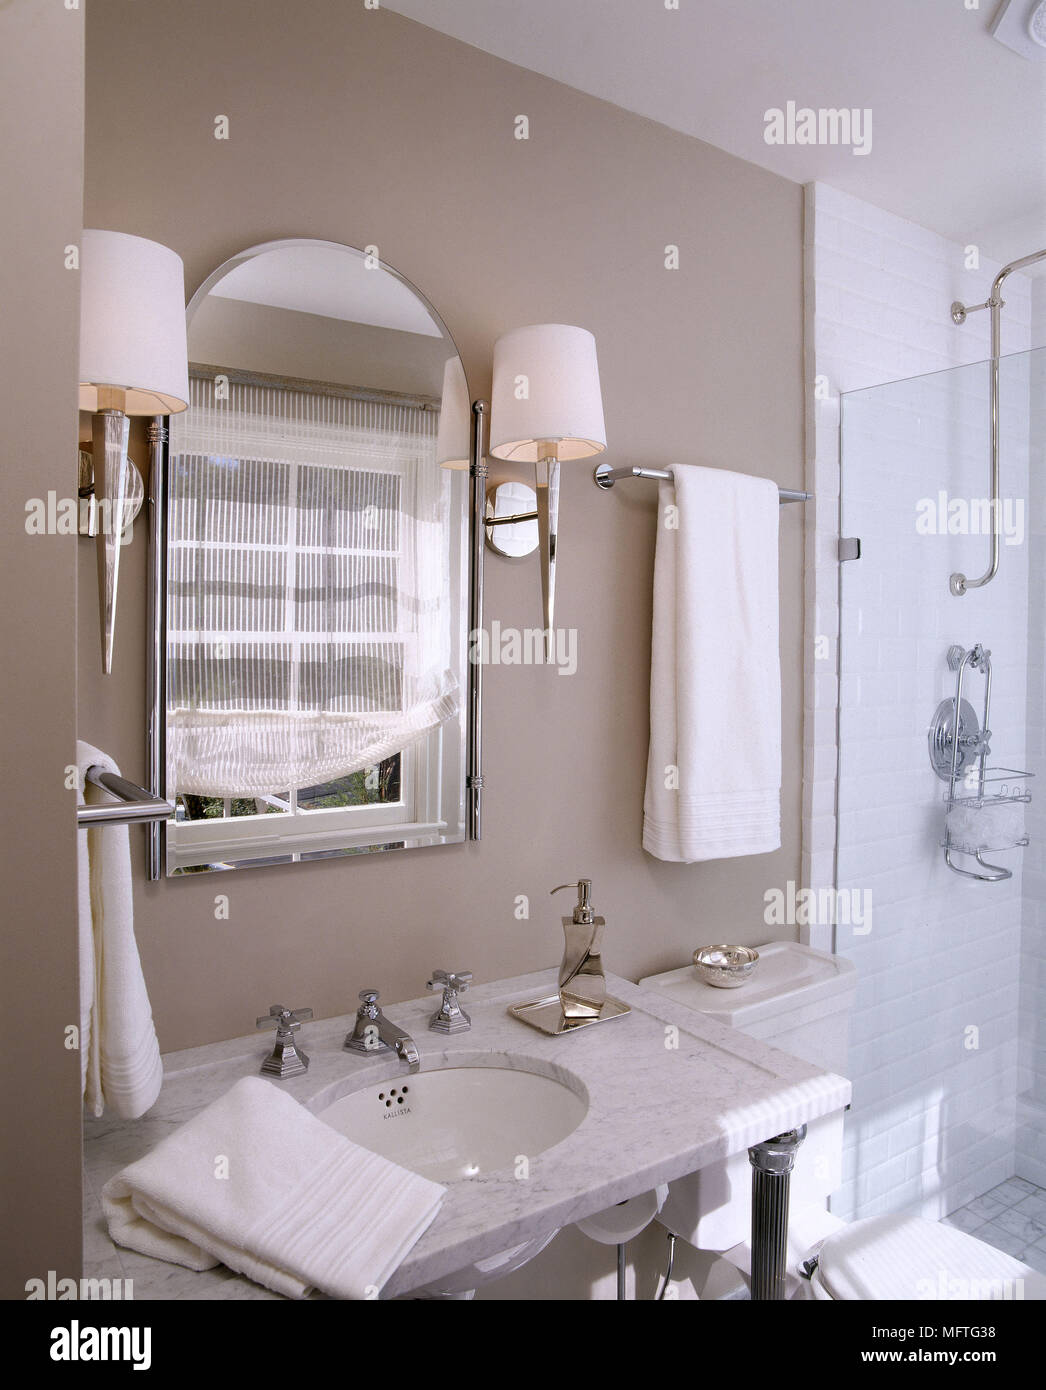 Bathroom with washbasin set in marble surround and shower cubicle ...